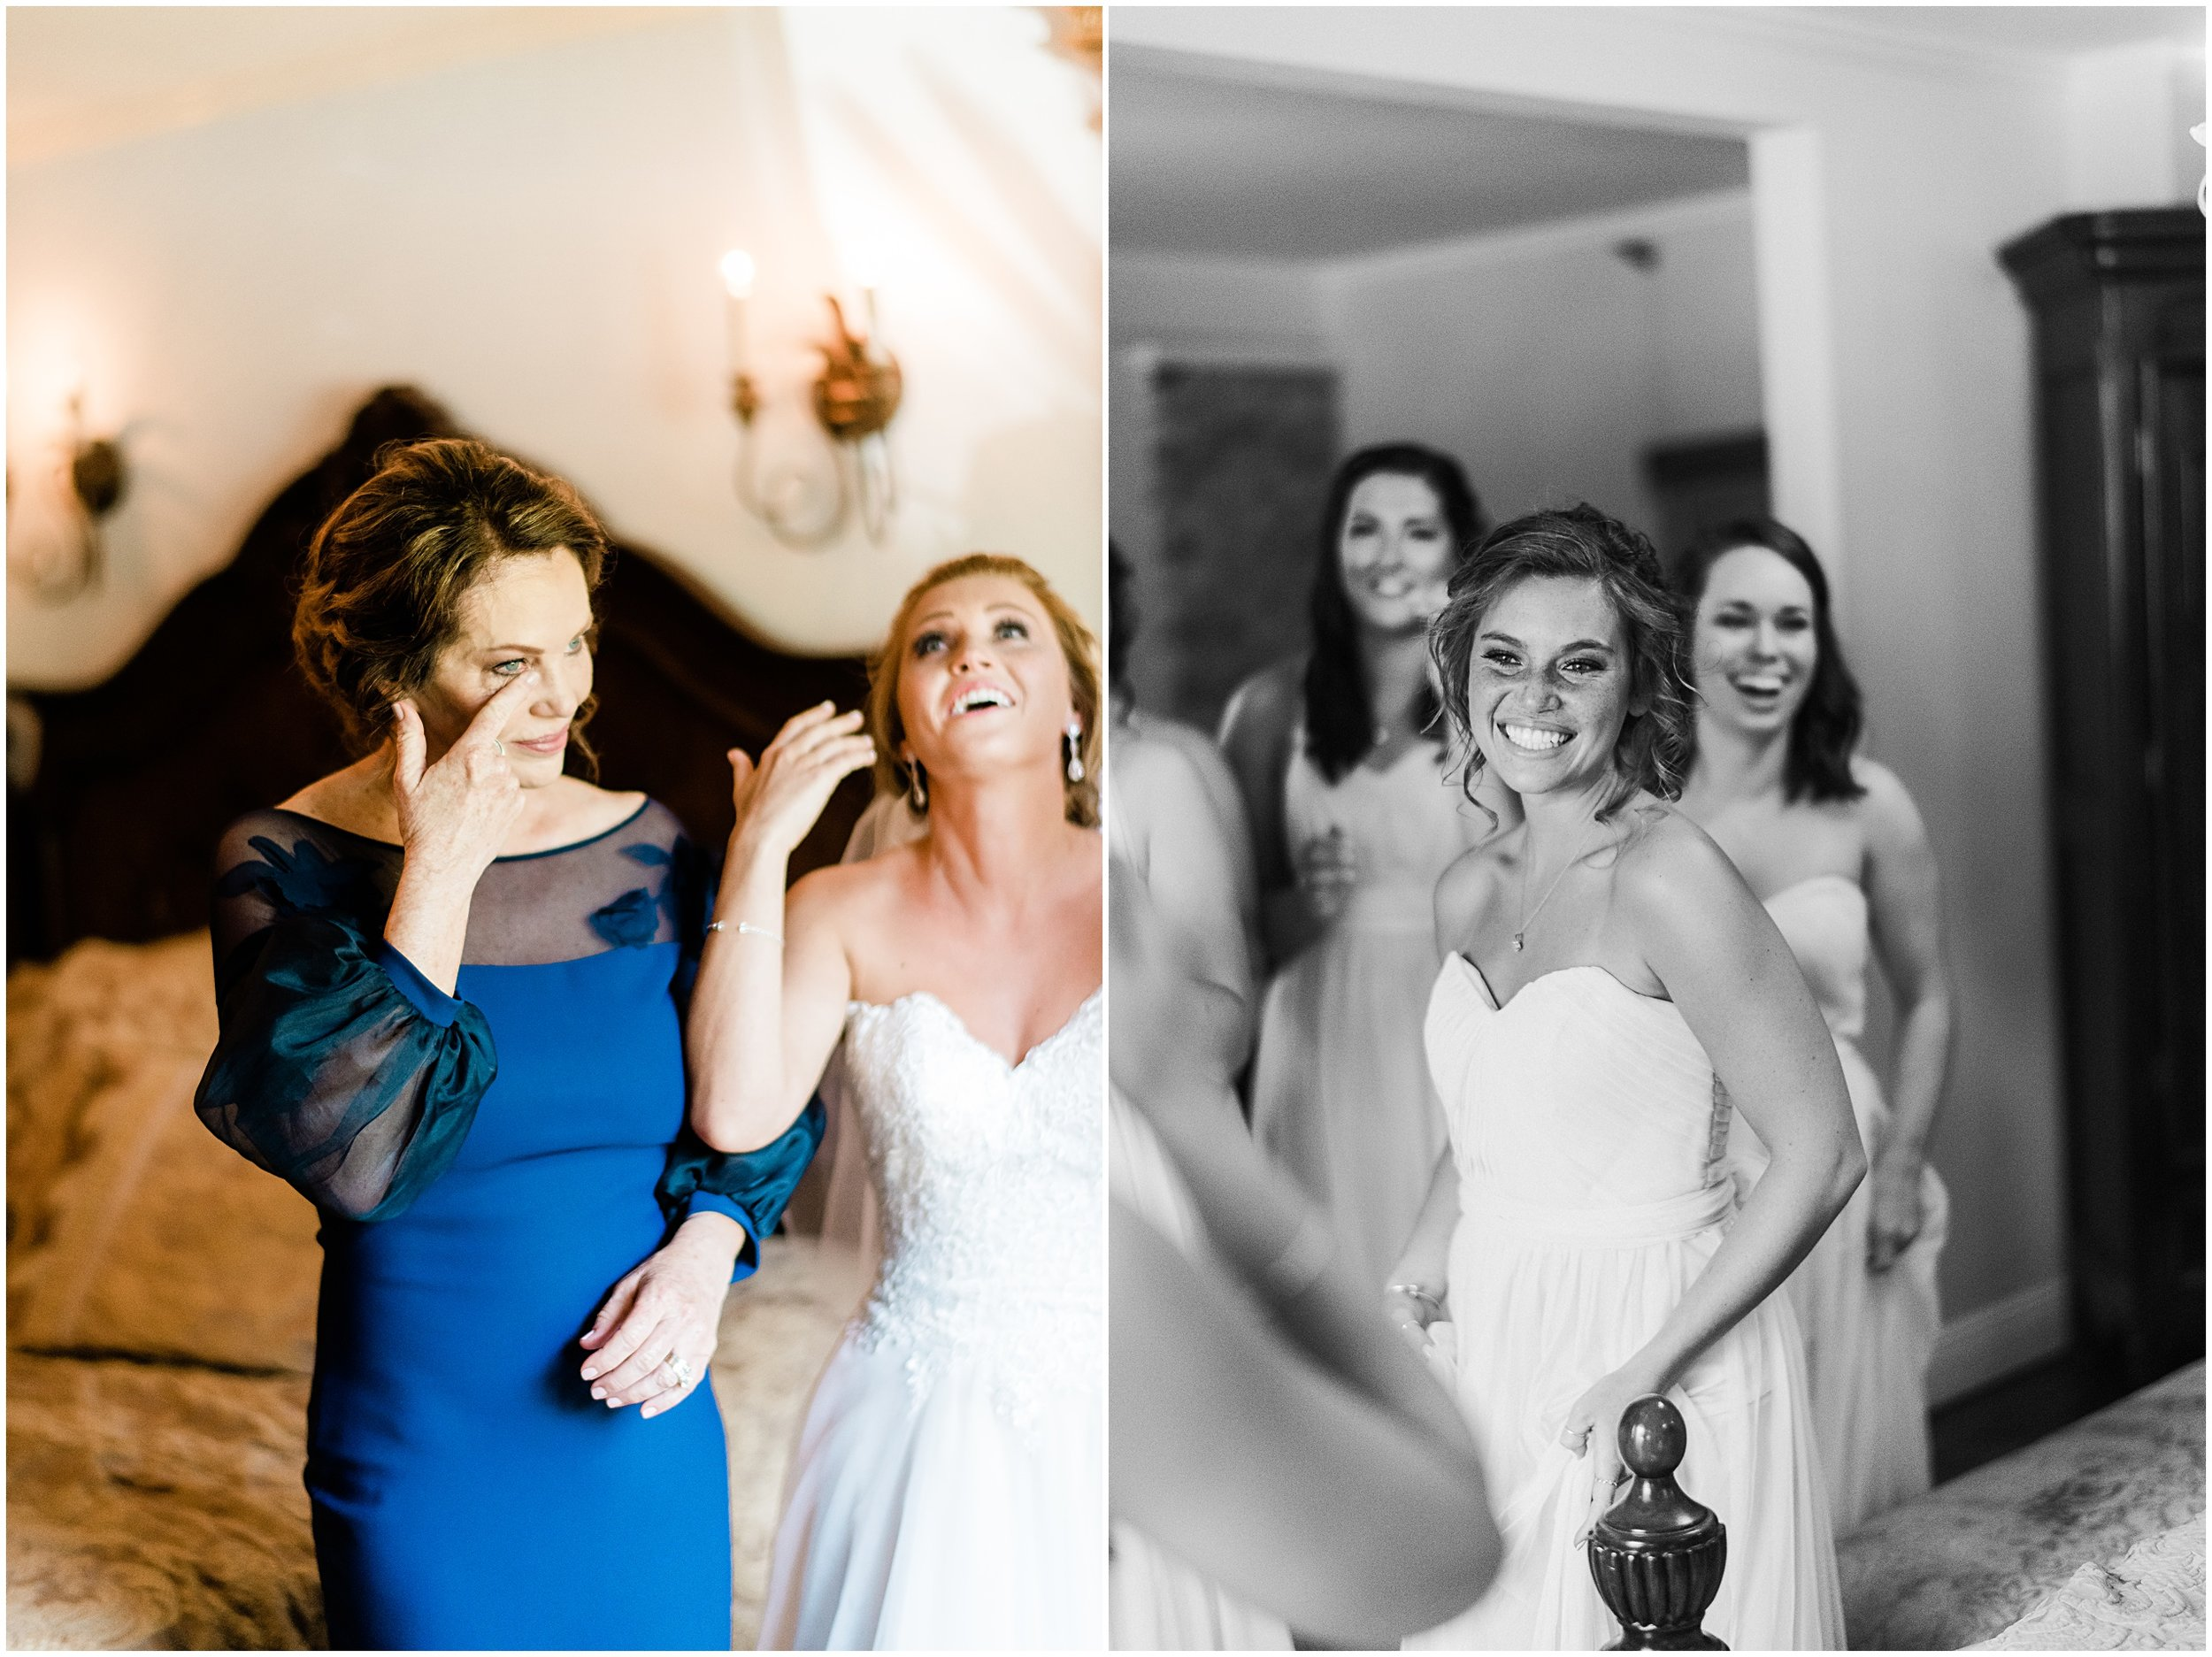 bestpensacolaweddingphotographer_1200.jpg